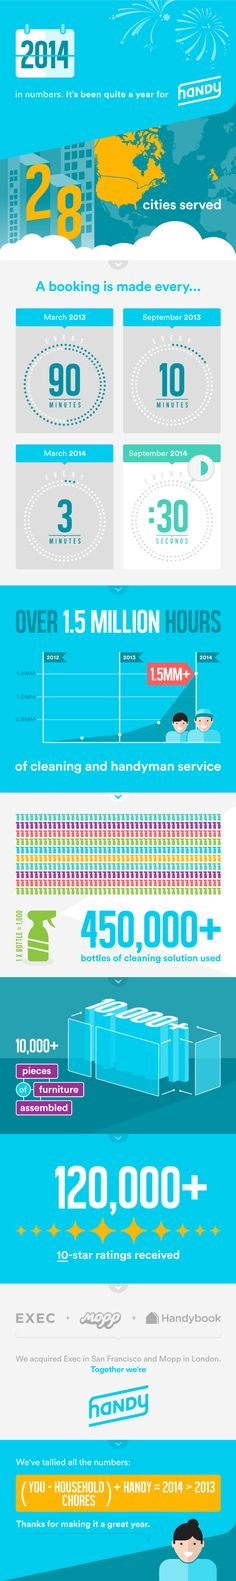 "Cleaning Business Today uses Handy as the benchmark of success in their article ""How do you stack up against Handy in 2014?"""